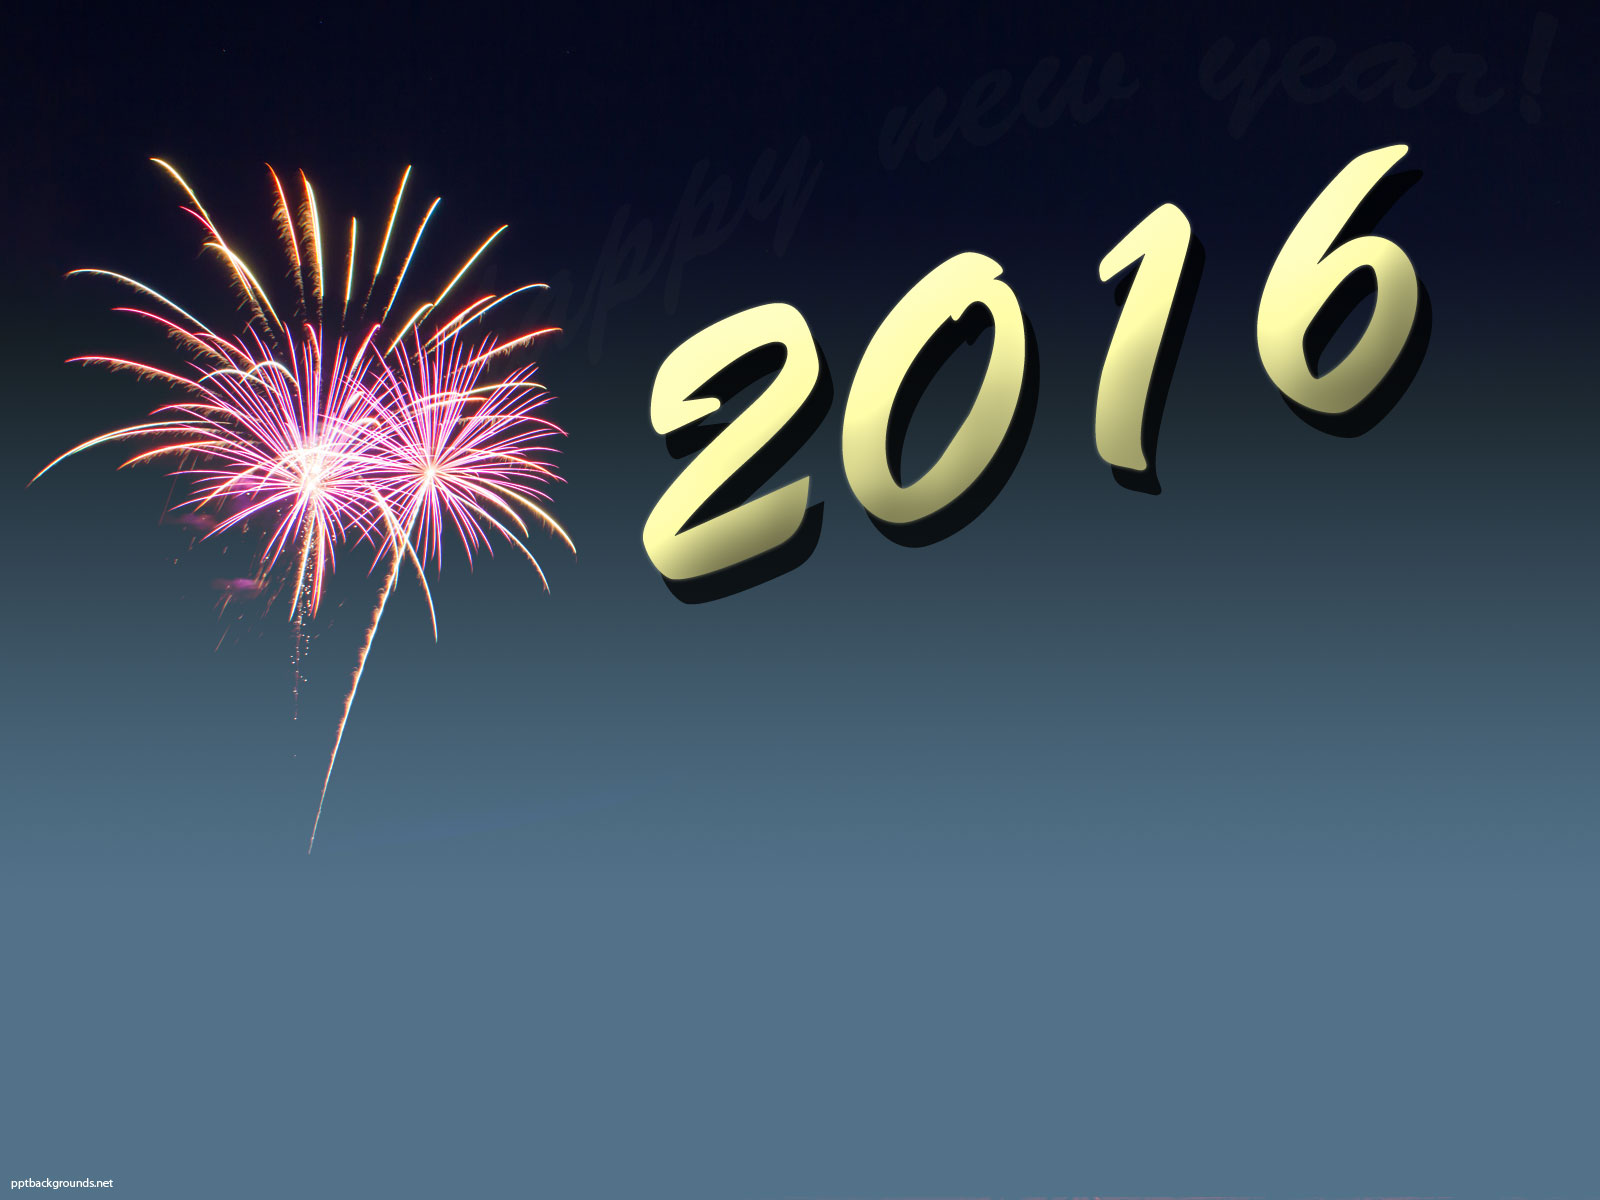 New Year 2016 Backgrounds For PowerPoint   Holiday PPT Templates 1600x1200